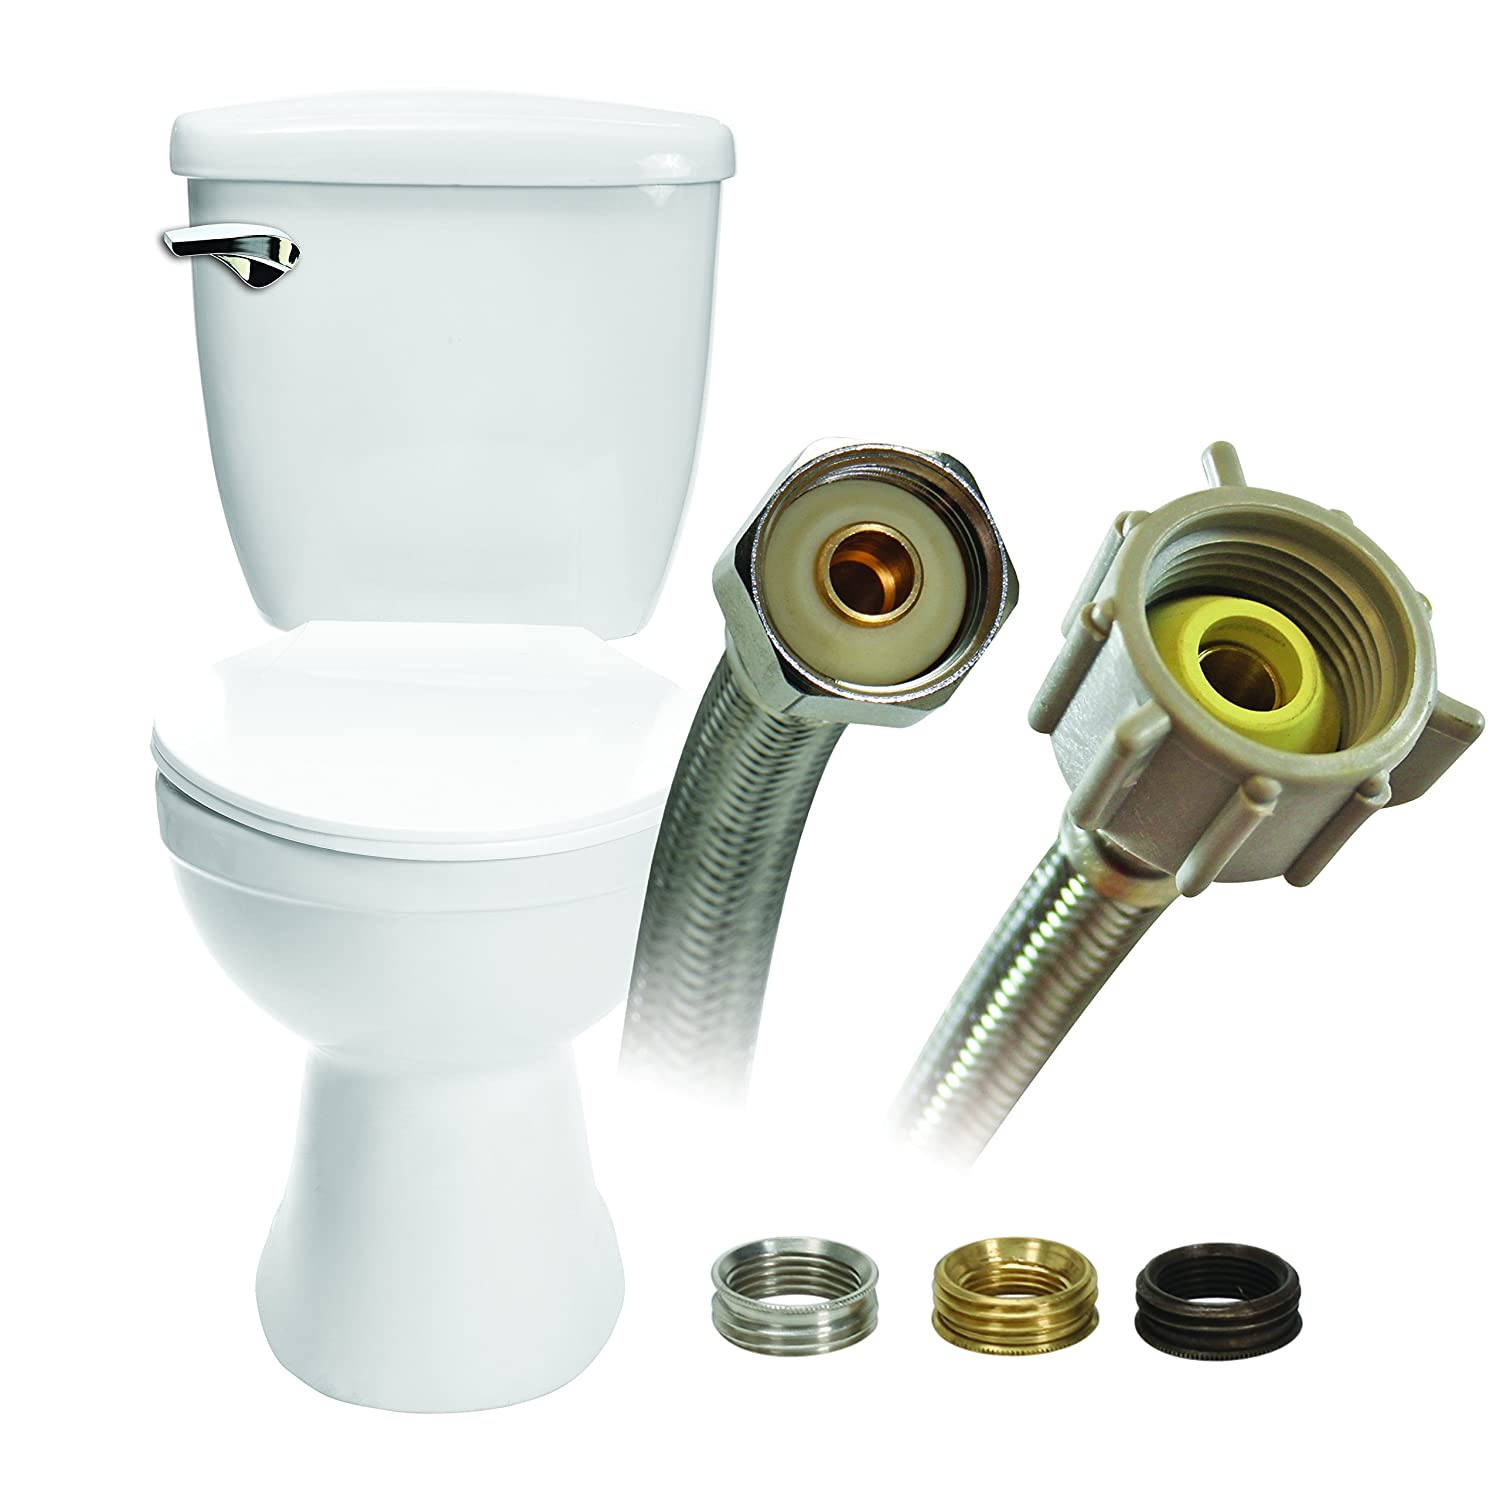 Fluidmaster B4T12U Universal Toilet Connector With Size Adaptors, Braided Stainless Steel - 3/8 Compression, 7/16 Compression, 1/2 Compression Or 1/2 F.I.P. ...